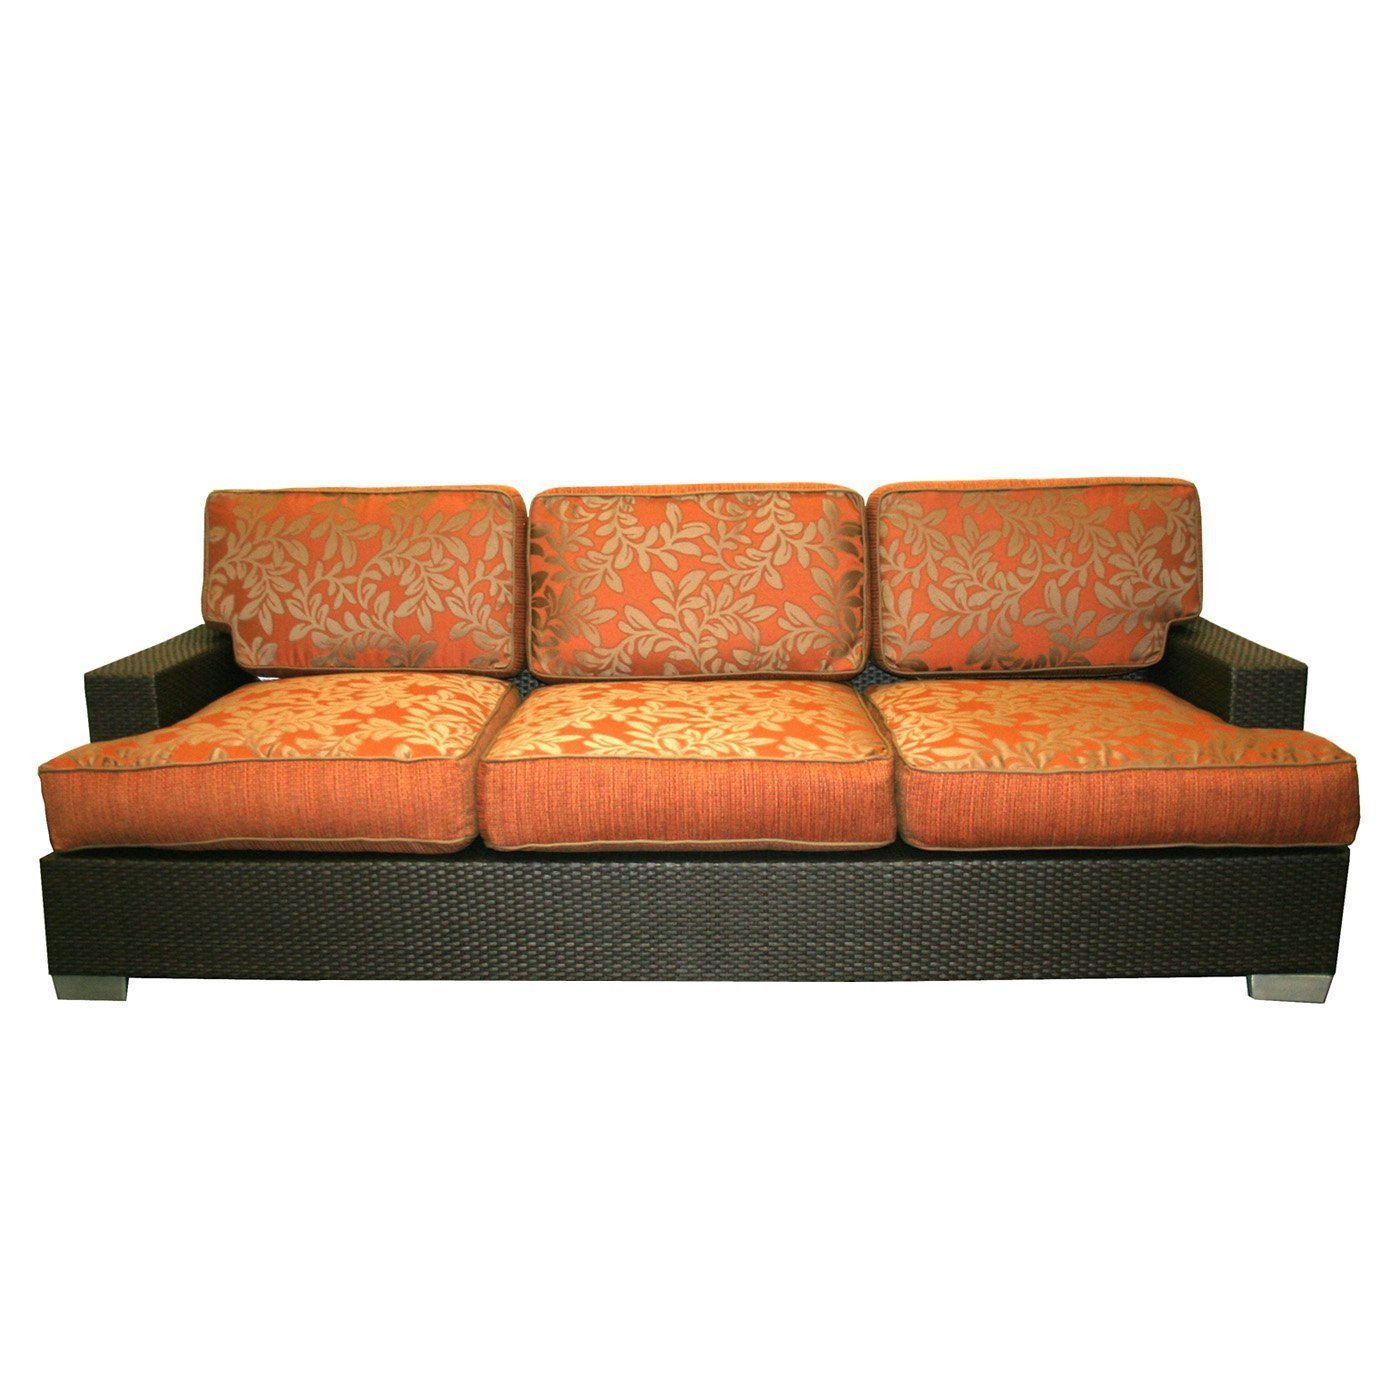 Sofa Sofa Patio Couch Wicker Photo